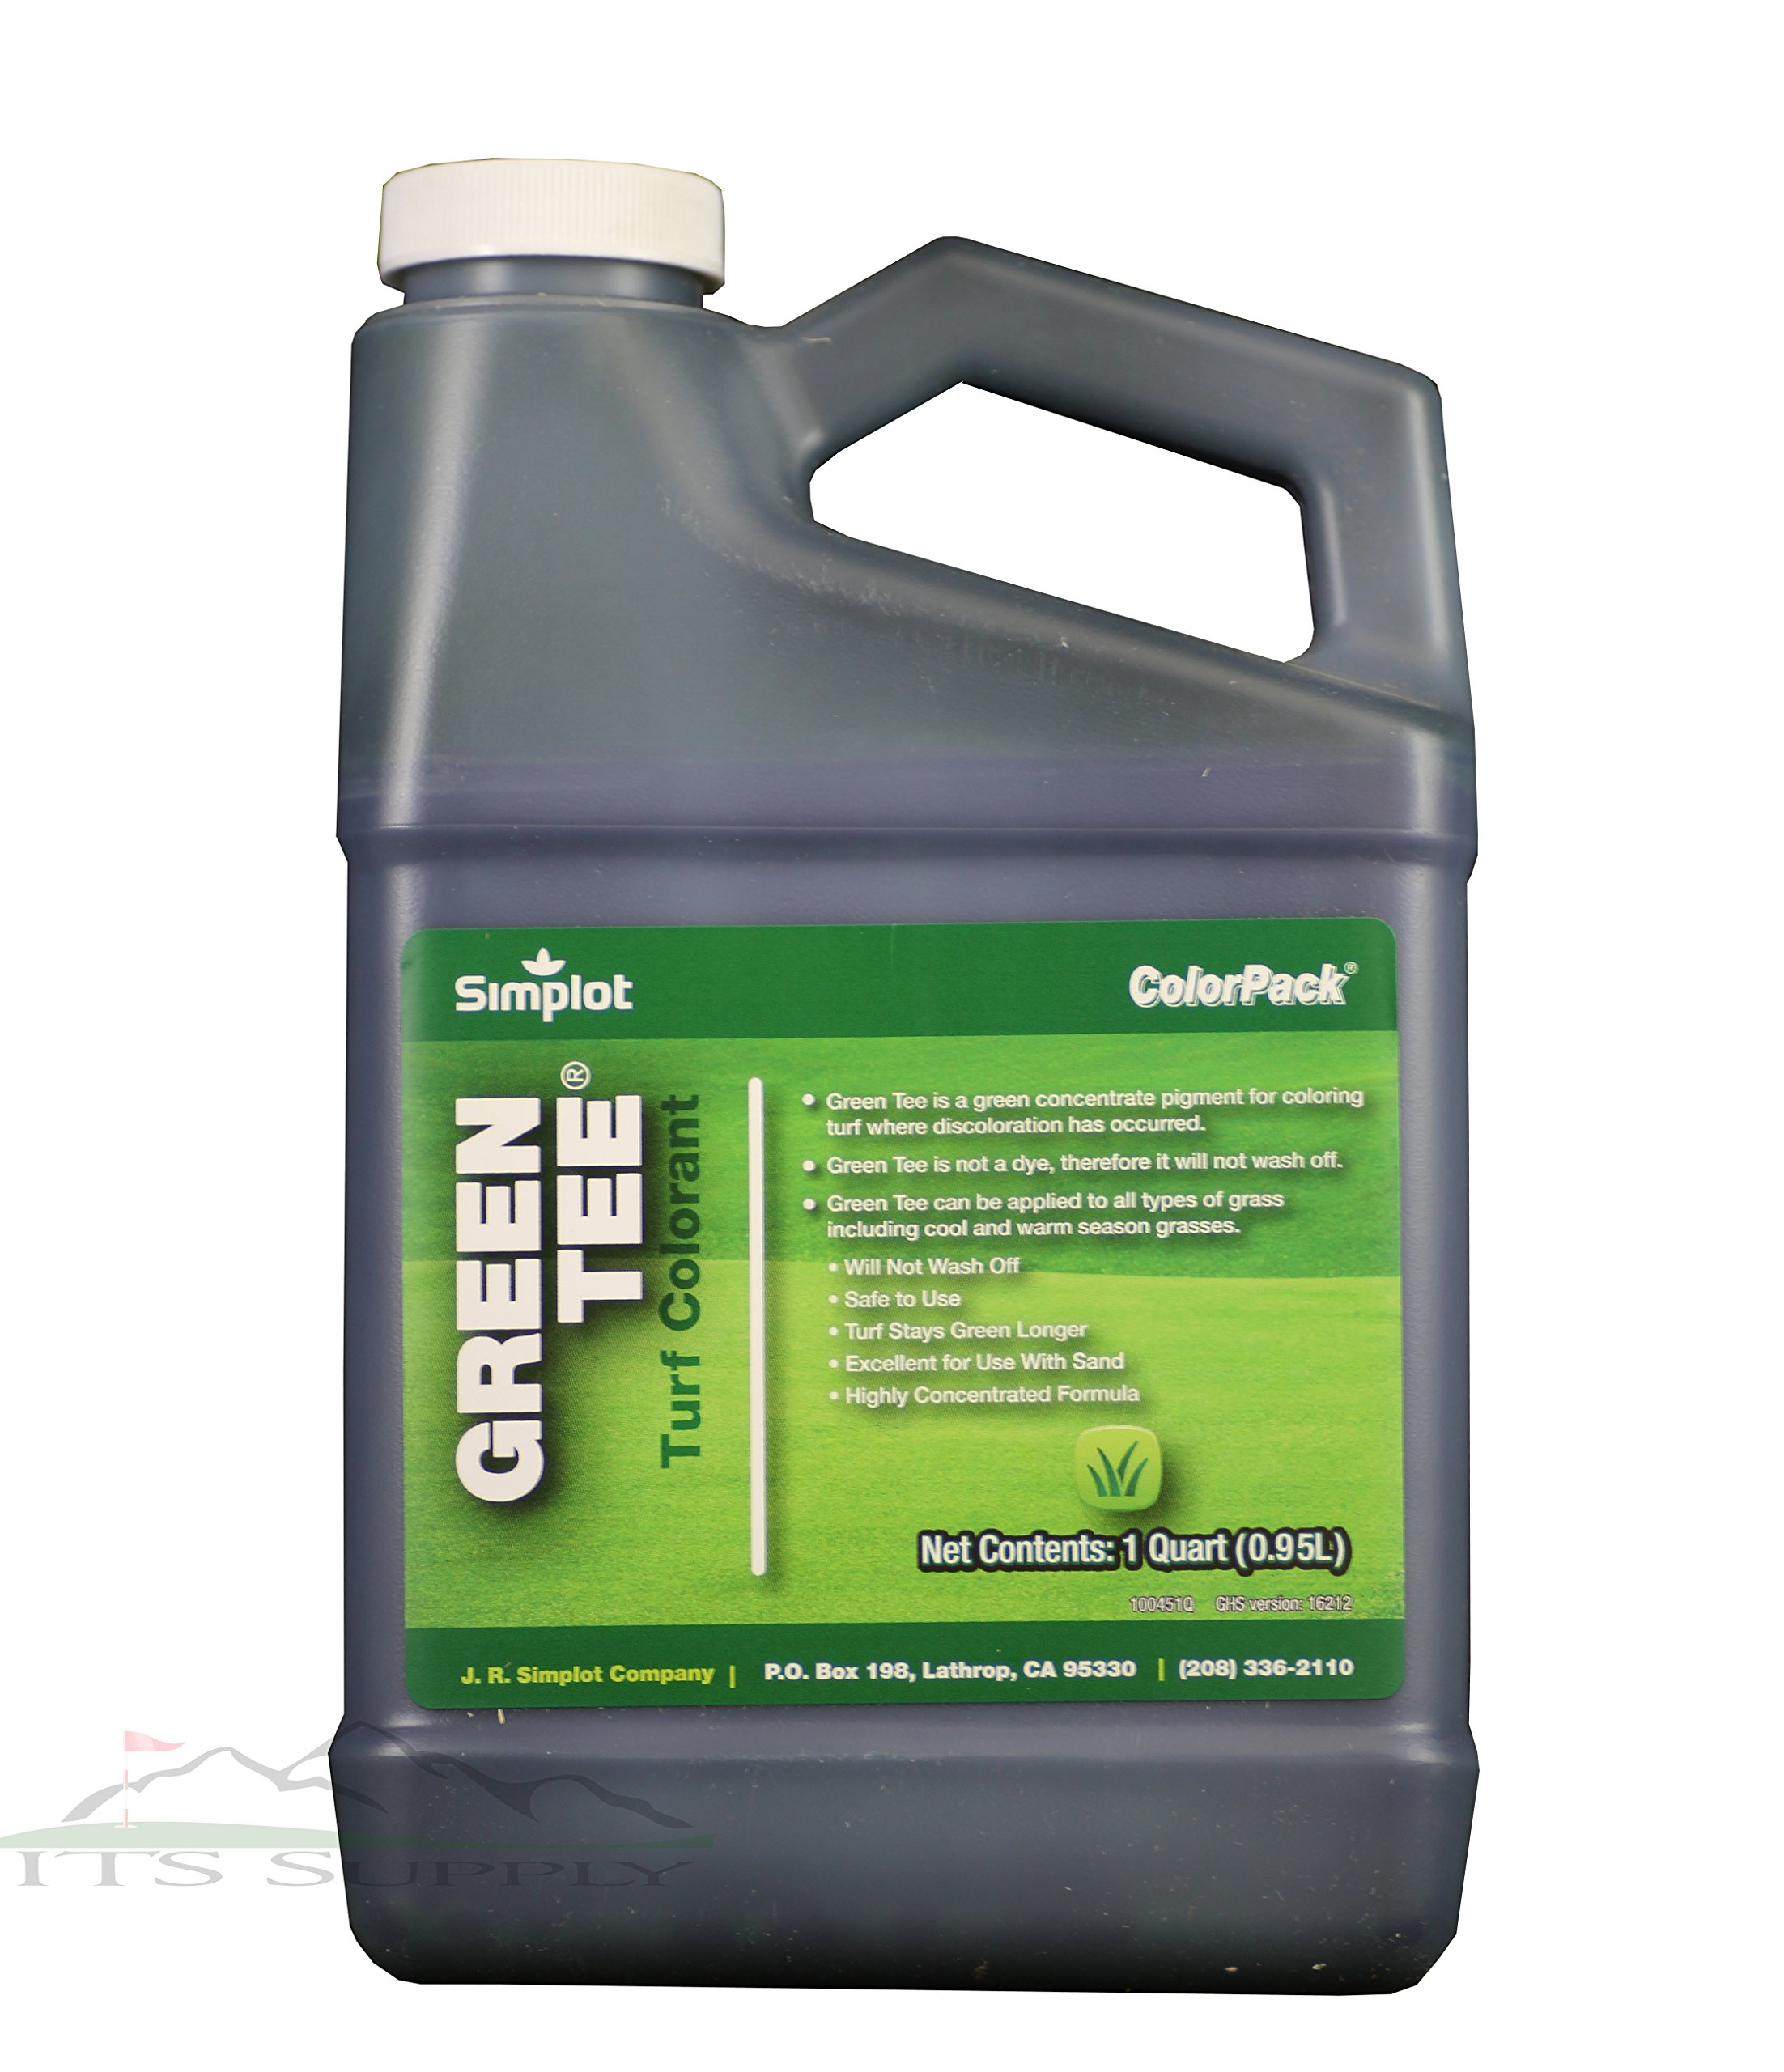 Green Tee Turf Colorant Lawn Paint 1 Quart Covers 1500 to 3000 square feet-Concentrated and professional grade colorant to improve the look of your lawn